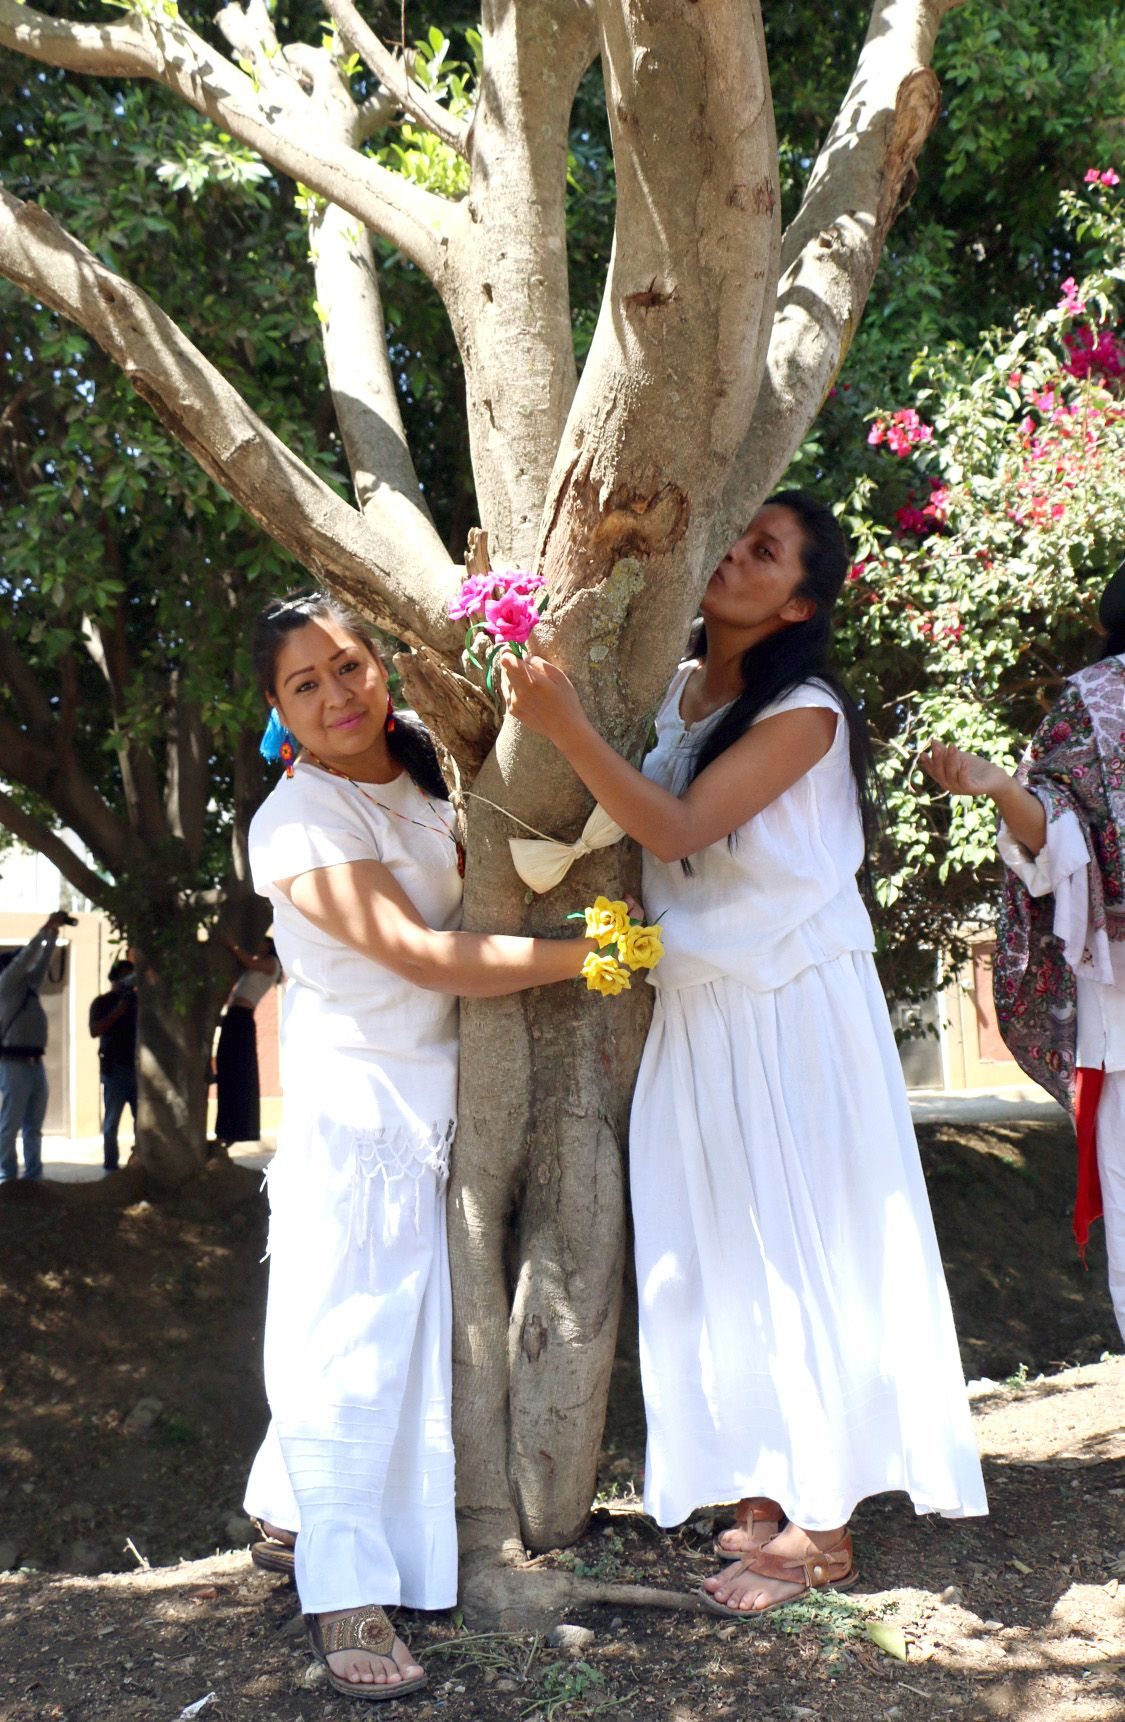 Women are Marrying Trees and the Reason Will Surprise You